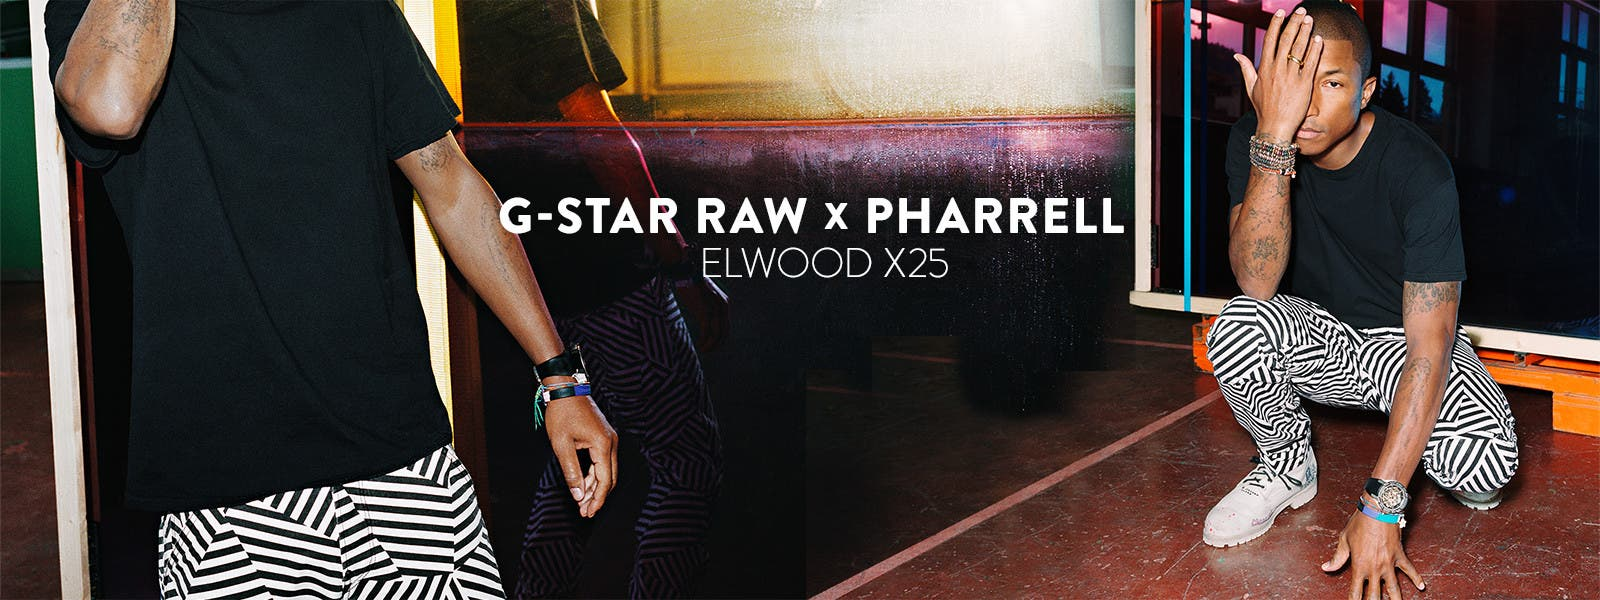 G-Star Raw and Pharrell: the Elwood X25 pant, reinvented.